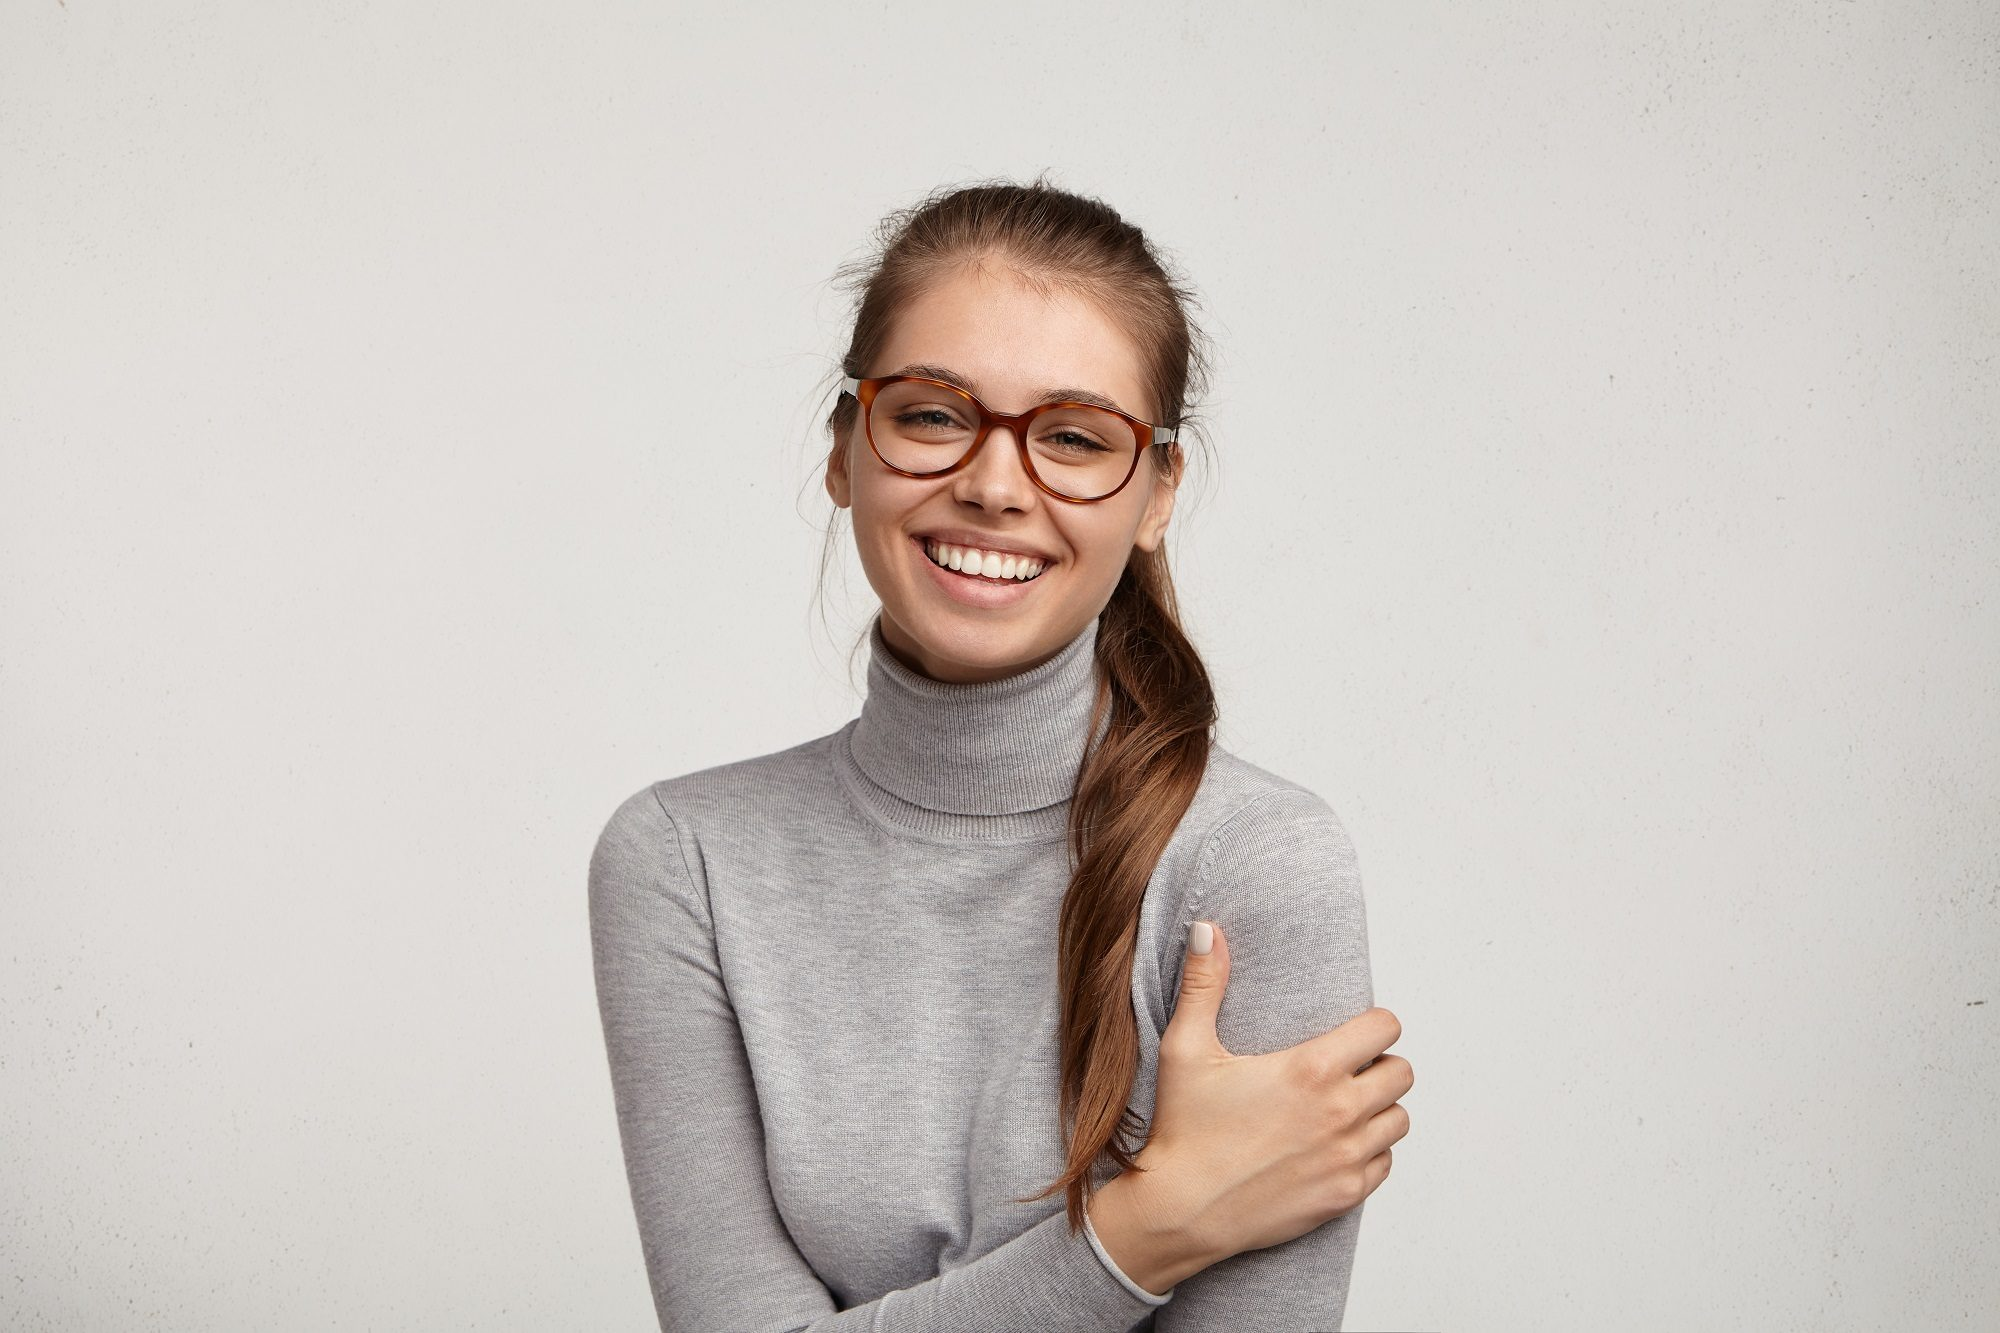 Side ponytail hairstyle for glasses wearers